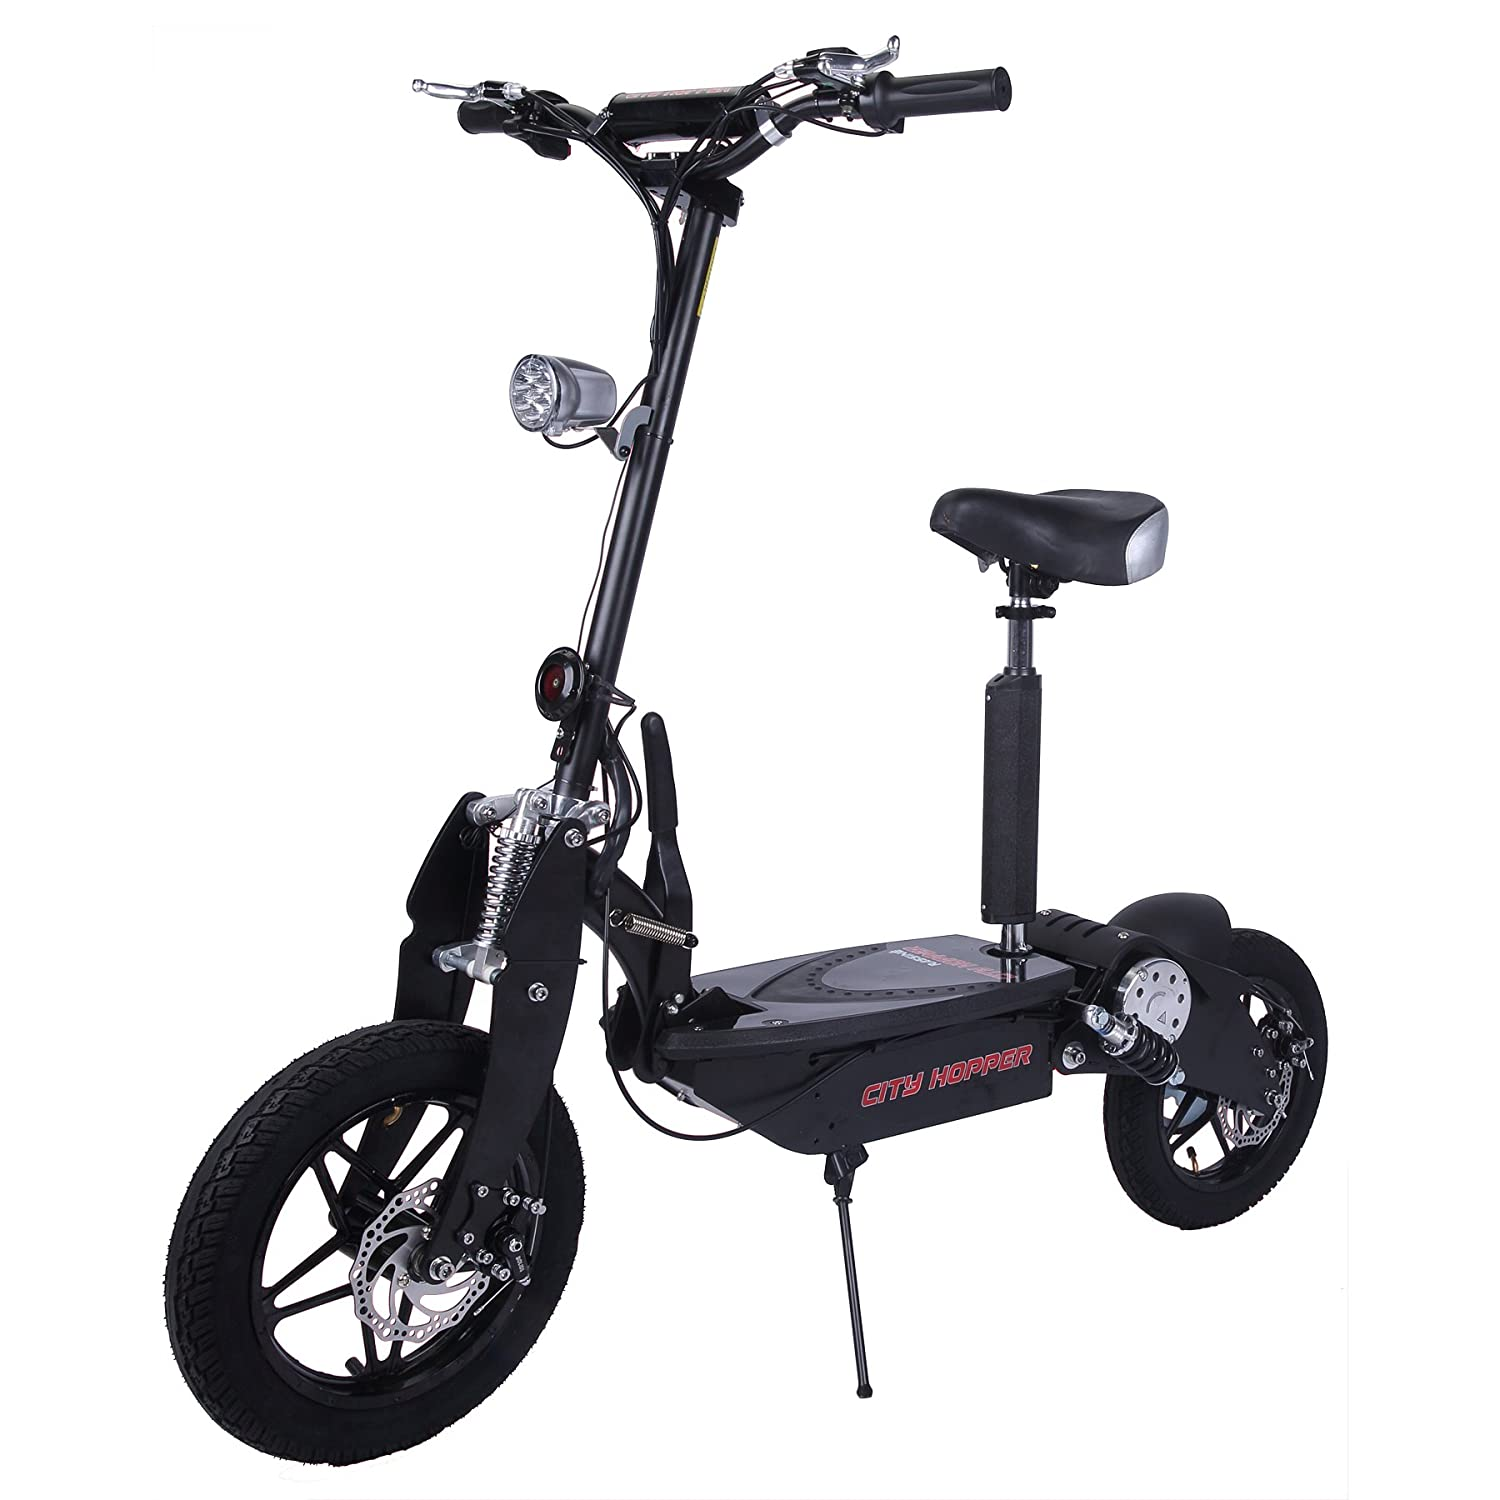 Best 50cc Scooter 2019: Reviews With Buying Guide - Join Fuse